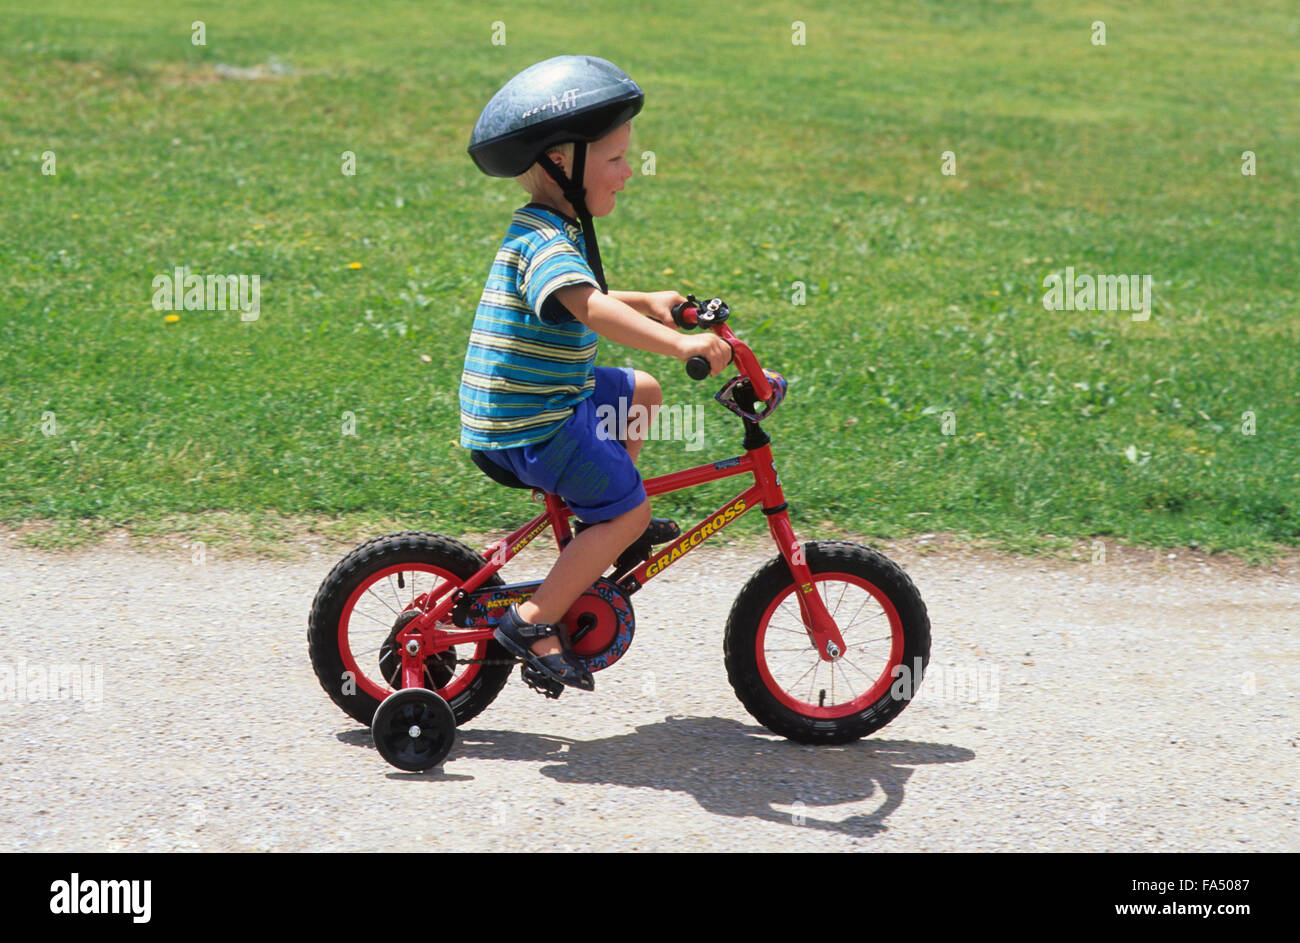 Cycling Young Boy On Bike With Helmet And Stabilisers Boy About 2